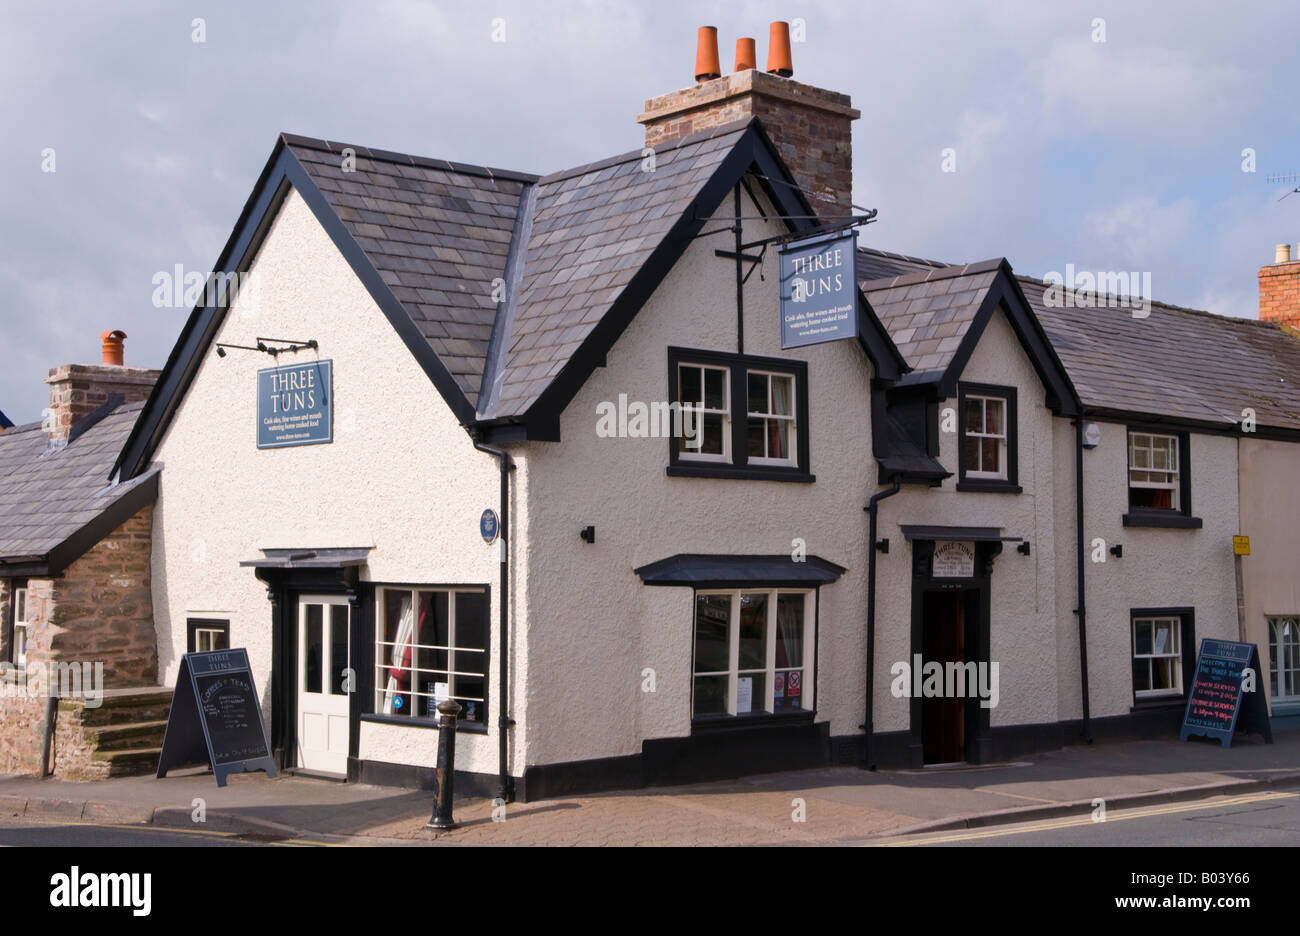 Refurbished 17th century Three Tuns Inn at Hay on Wye Powys Wales UK EU dating from 1600 - Stock Image